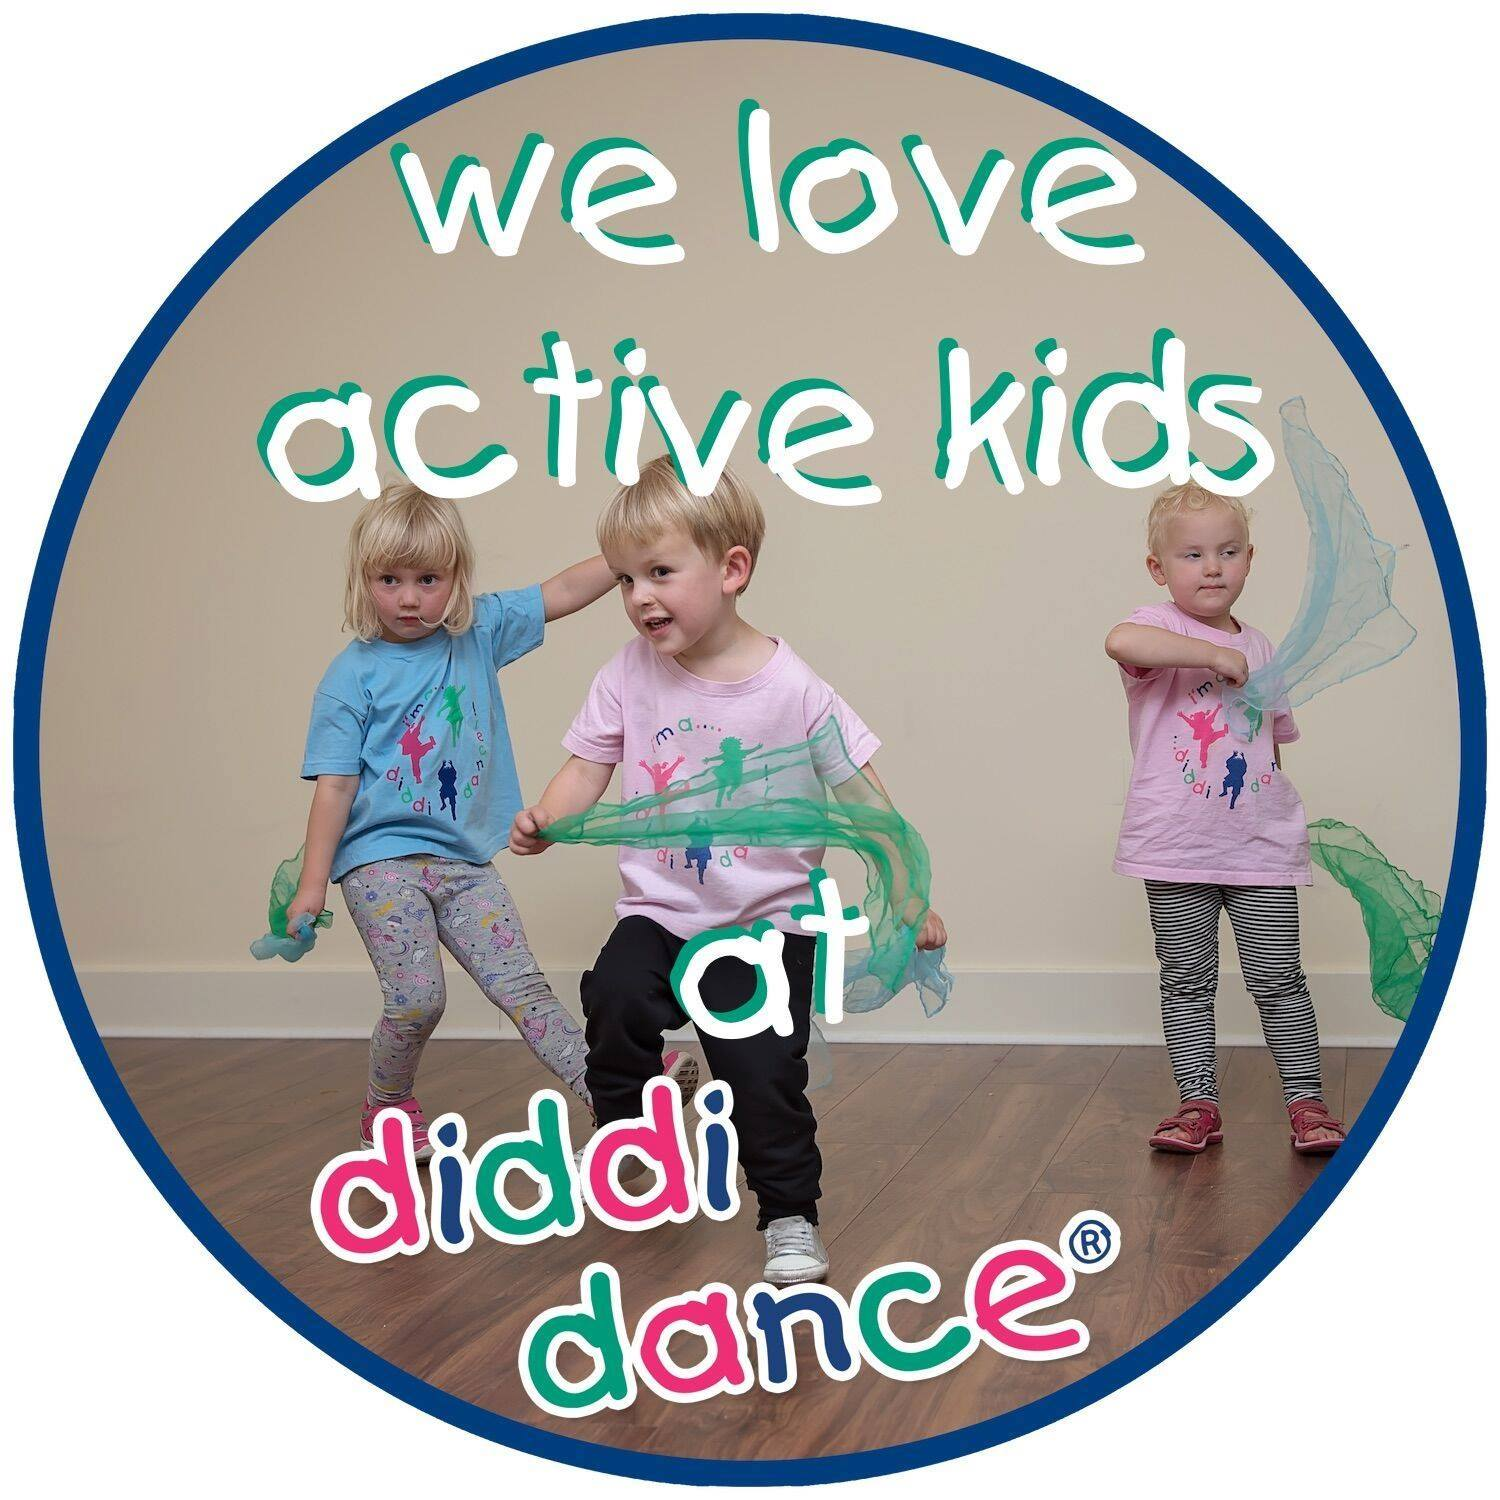 diddi dance Oxford & Surrounding's logo